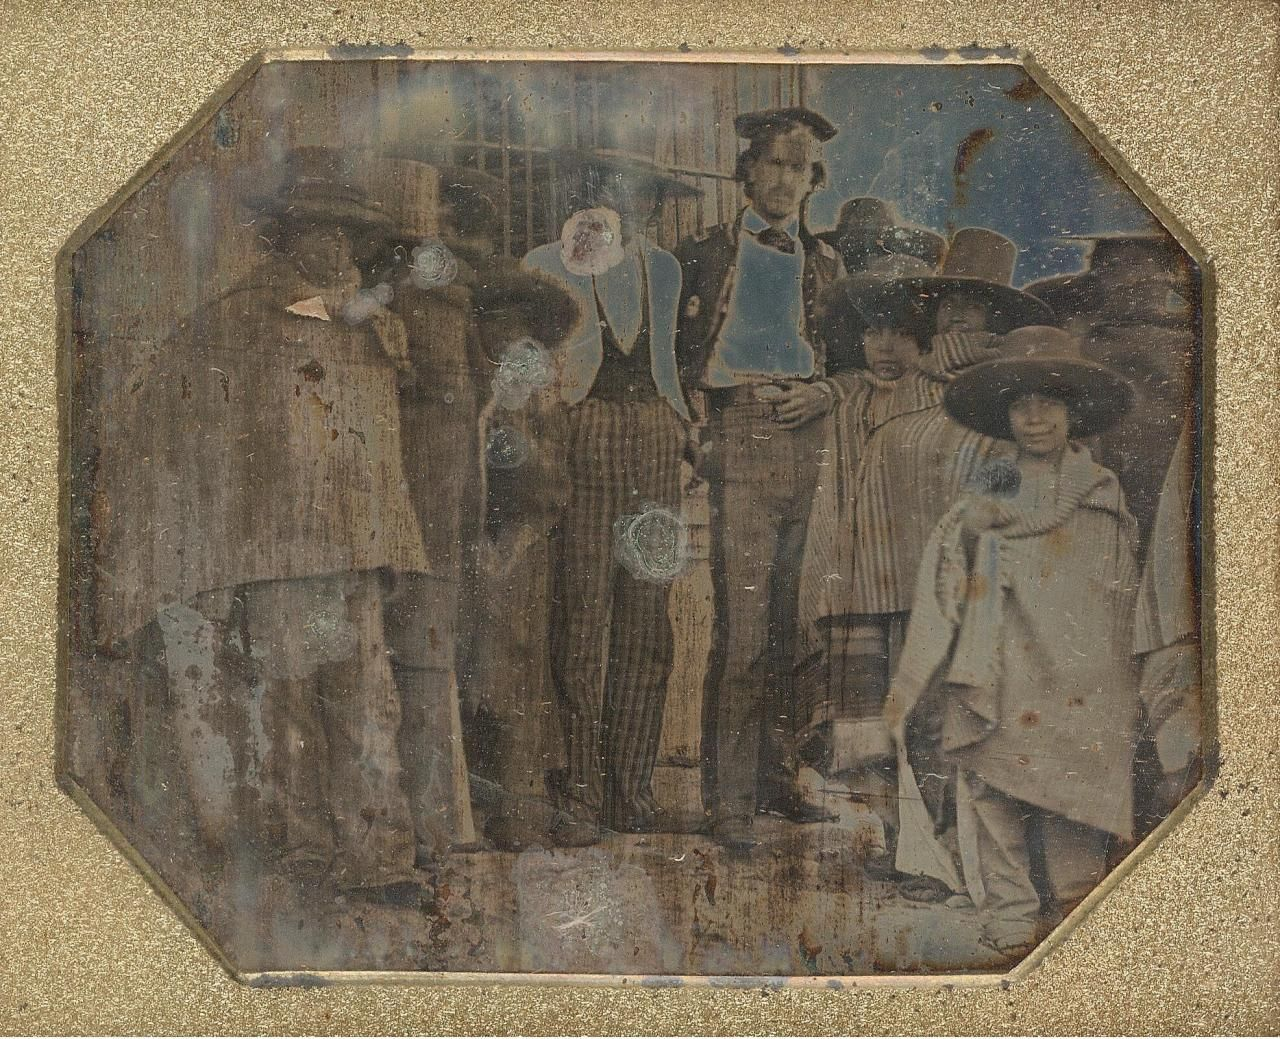 In Mexico With Abner Doubleday Mexican American War